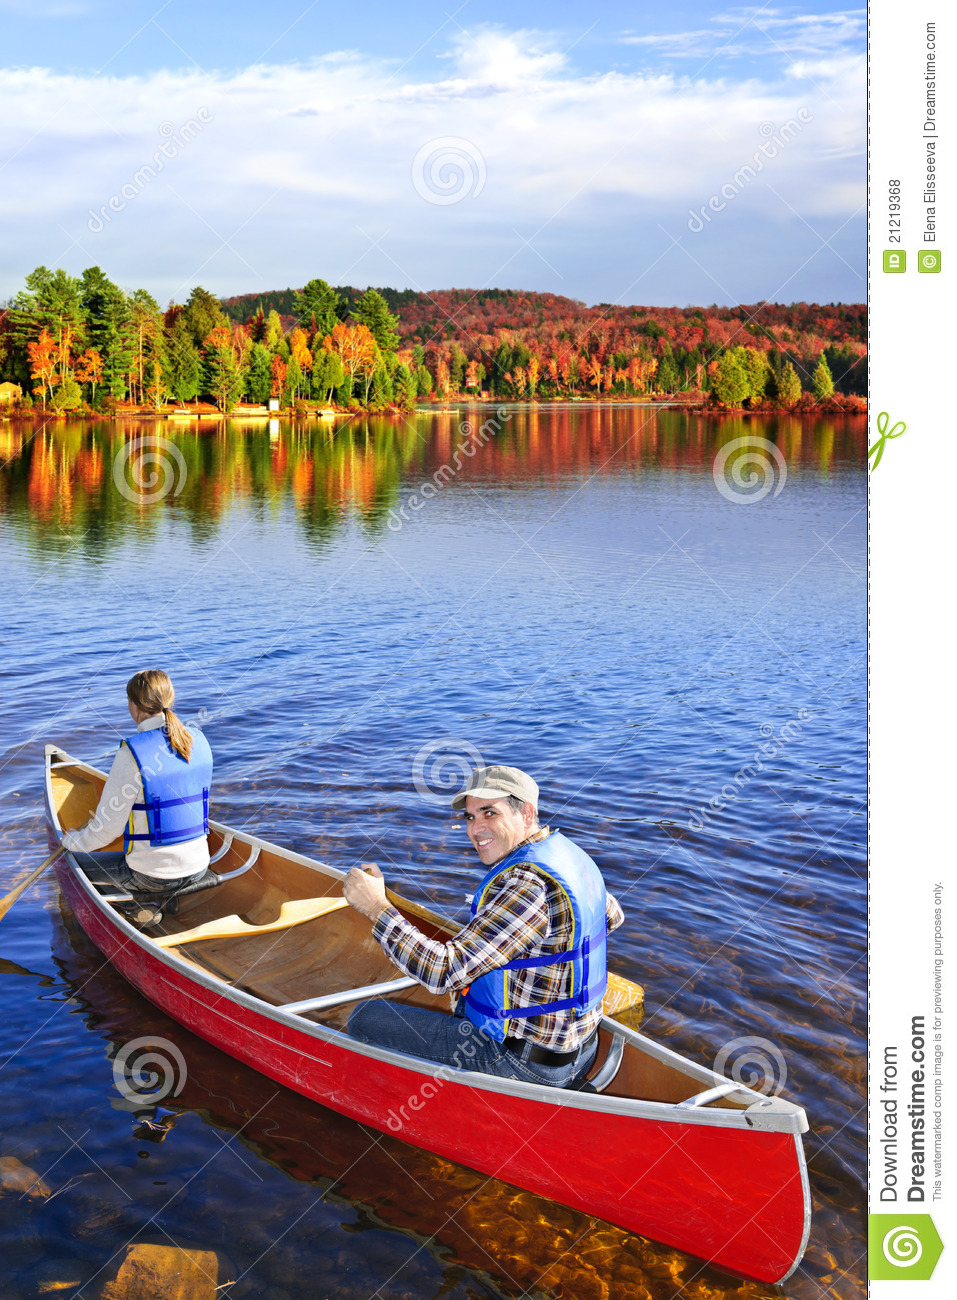 Canoing fall